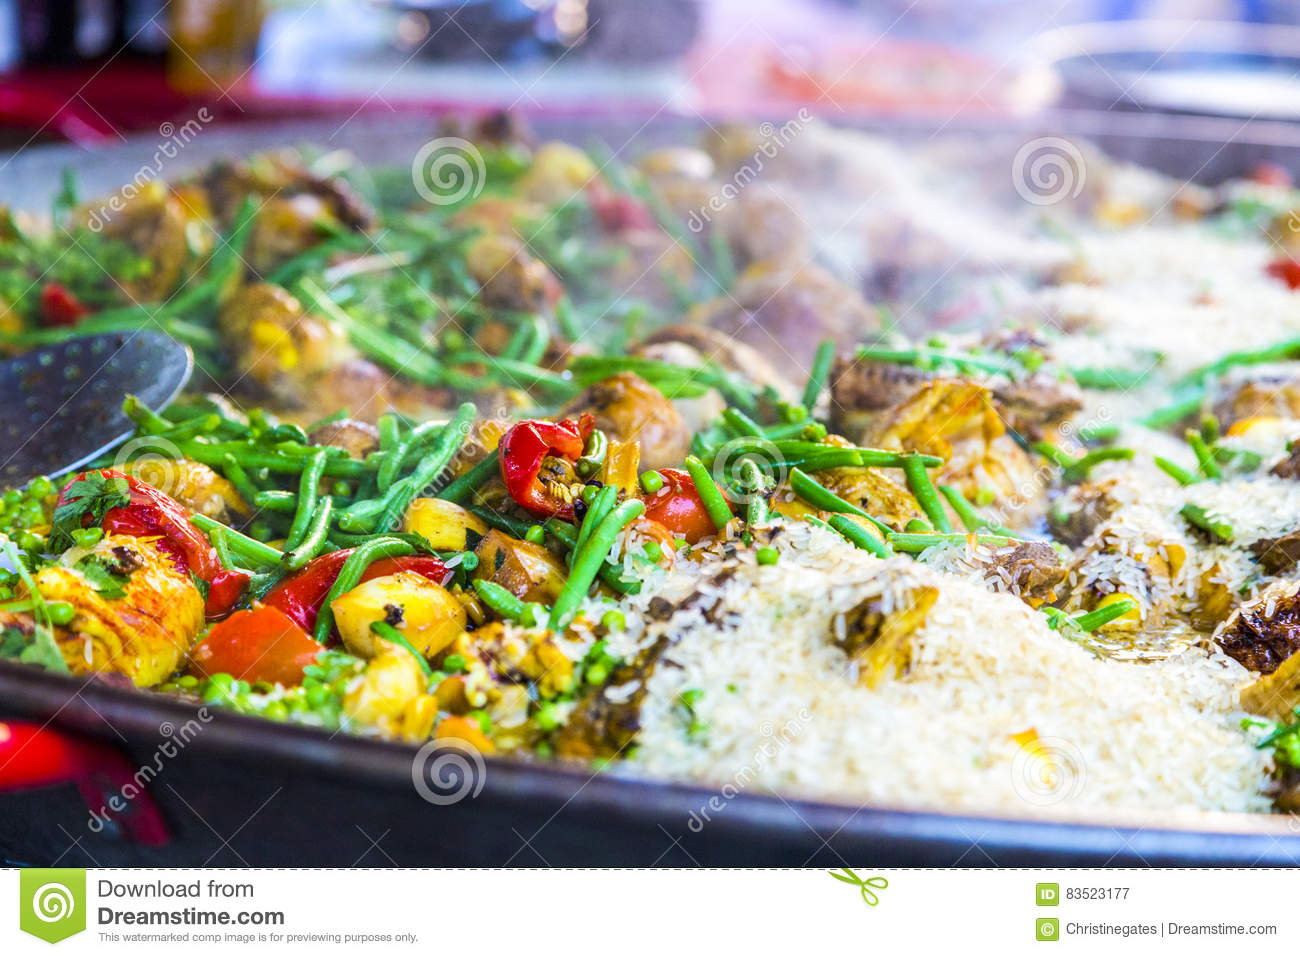 Steaming hot paella, seafood, rice and vegetables in French mark